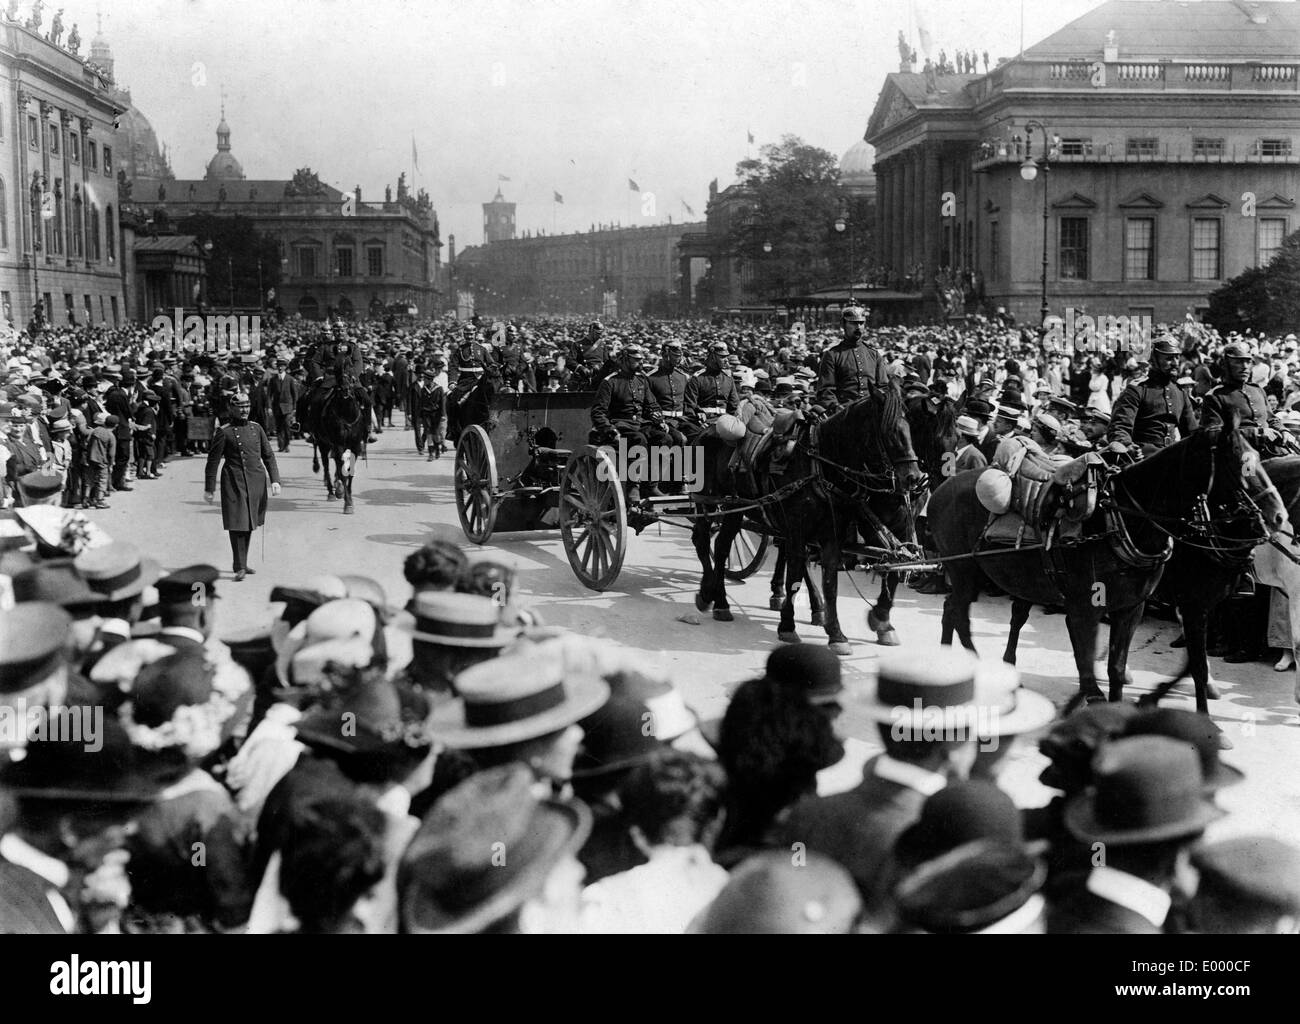 Military parade with war loot, 1914 - Stock Image